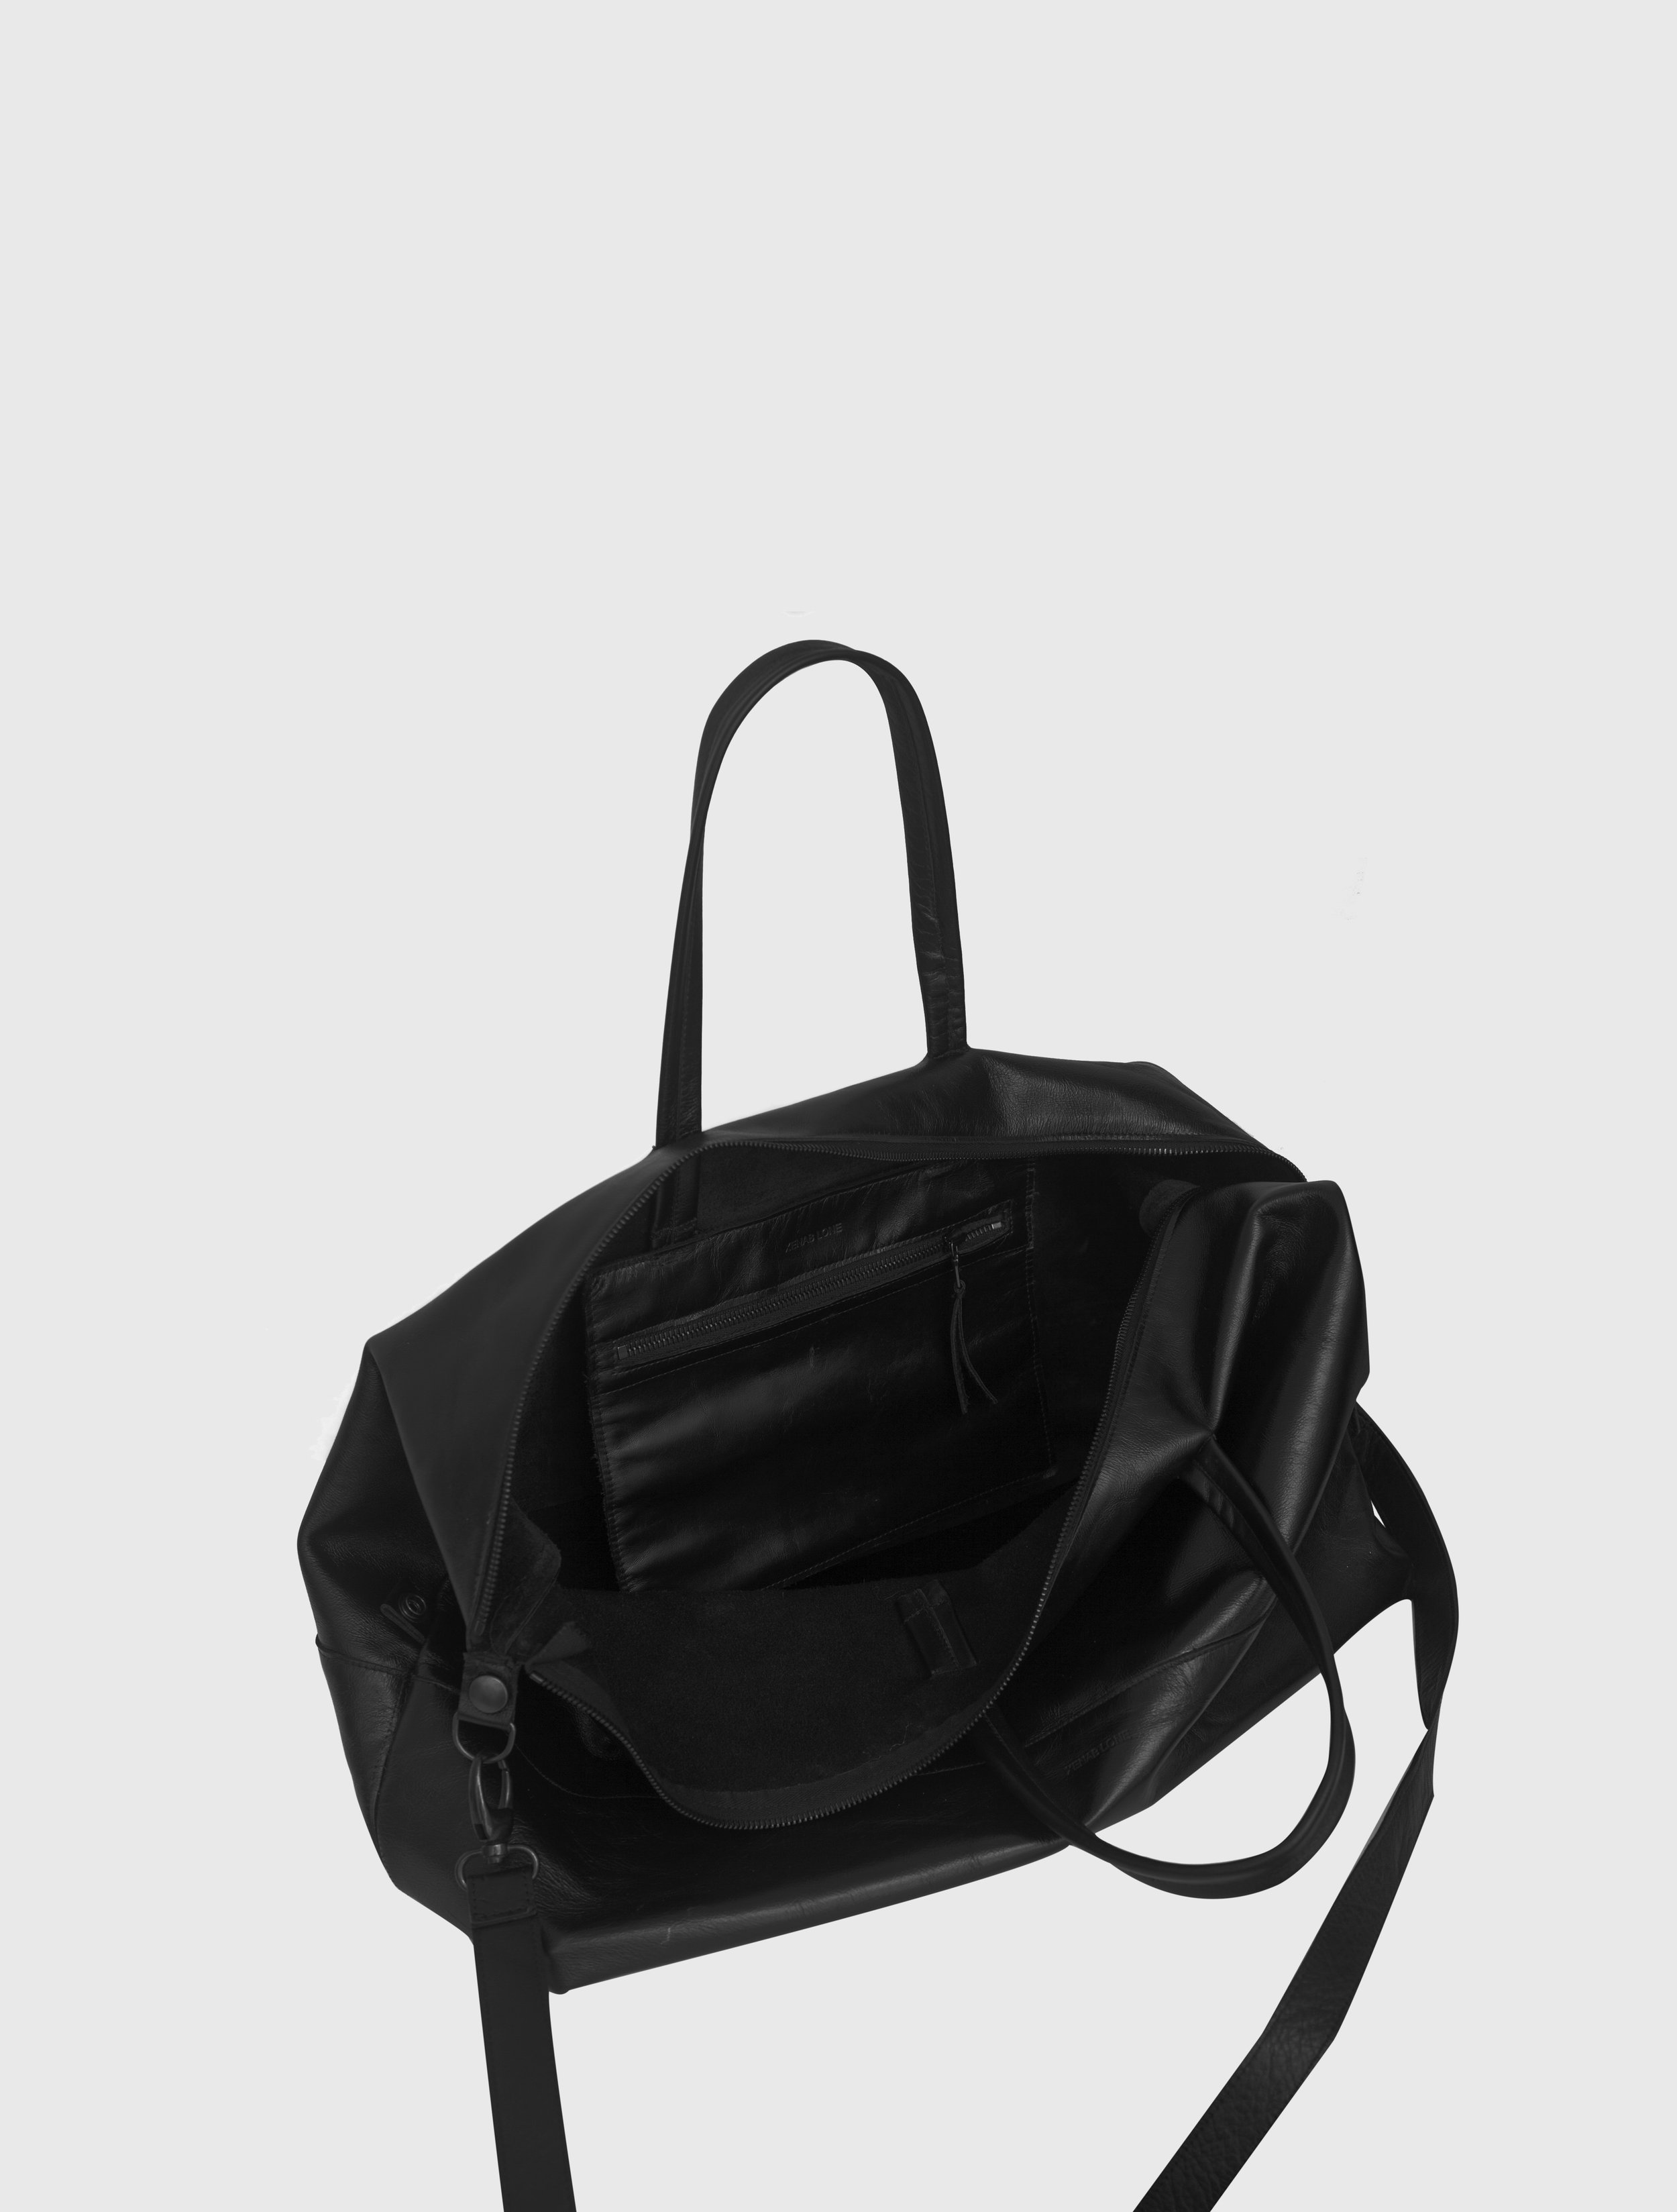 2015-16 HOLDALL - BLACK OPEN.jpg